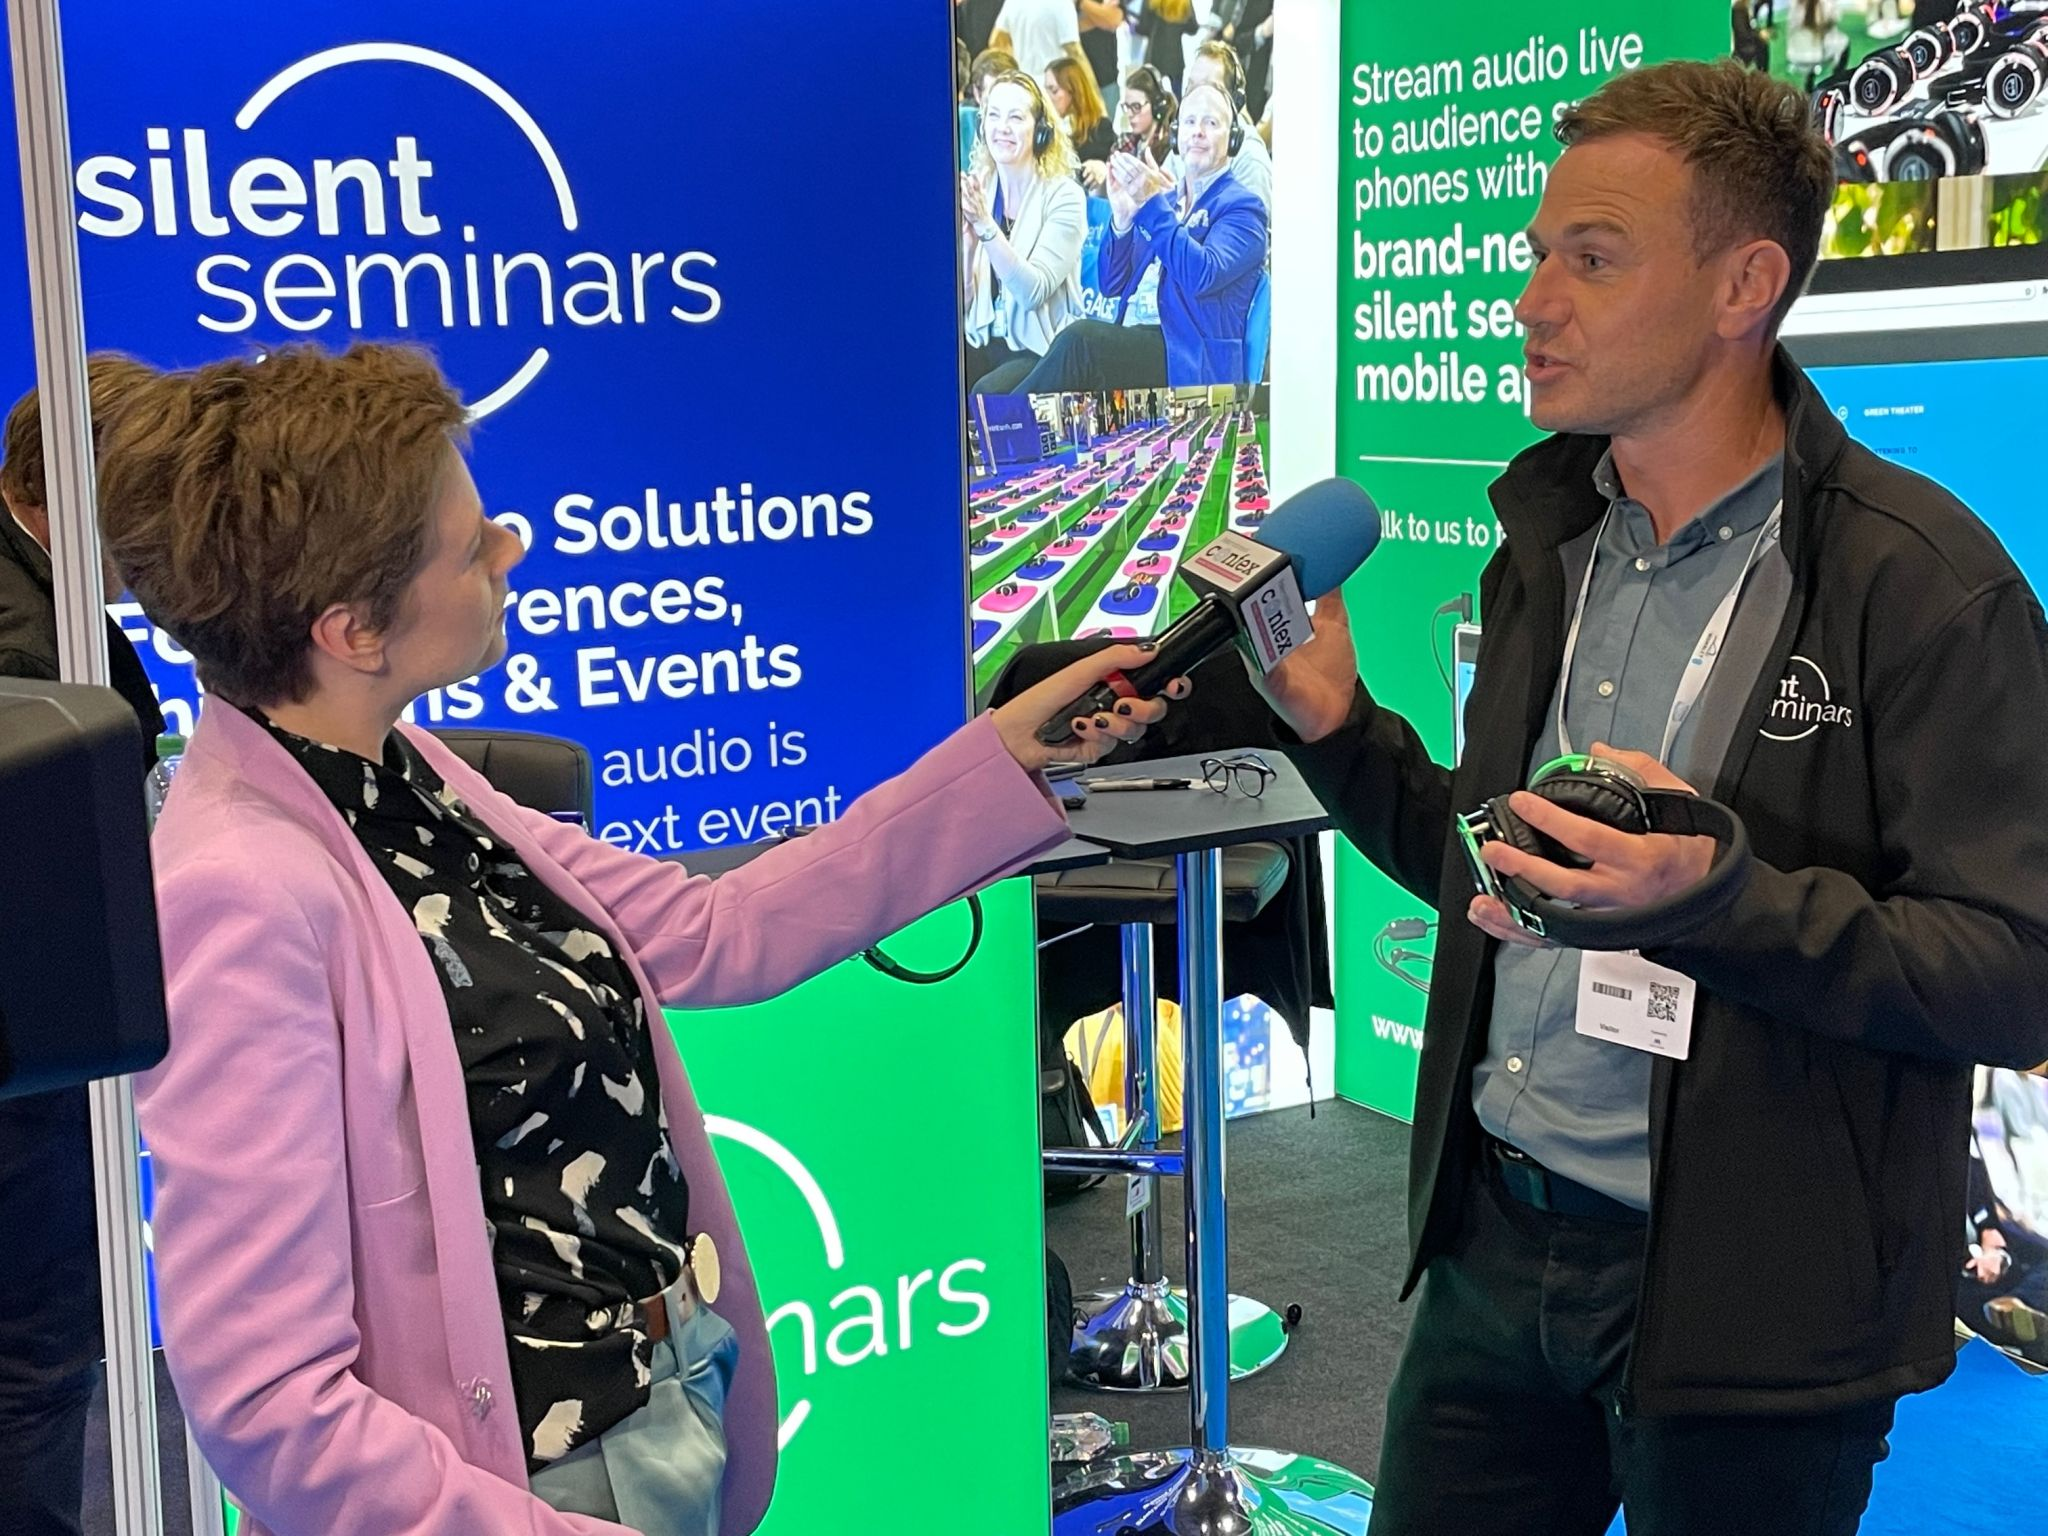 Duncan Strain, Director of Silent Noize and Silent Seminars, being interviewed at the Silent Seminars exhibition show at International Confex 2021.